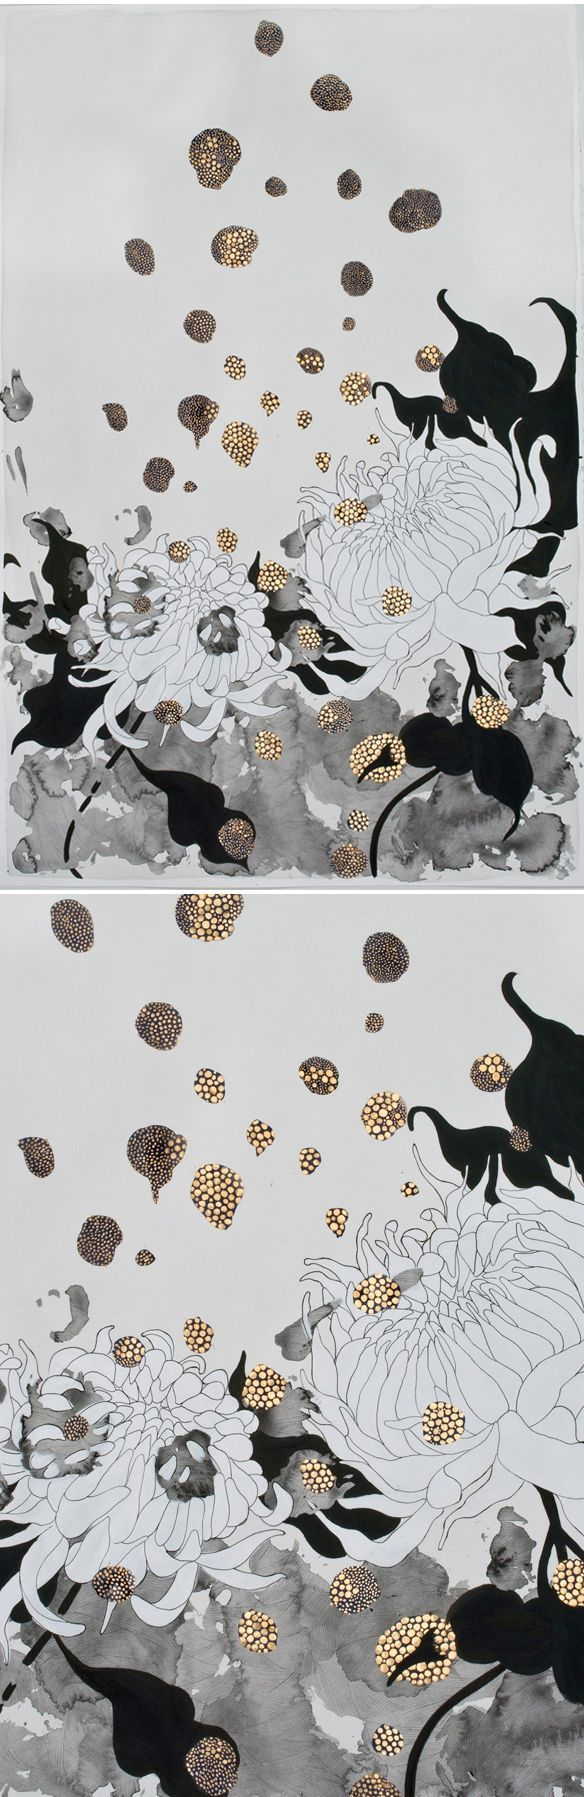 I wrote about Canadian, now Bay area based, artist Crystal Liu just over four years ago. We just recently reconnected through email, and boy am I happy that we did because I got a peek at these beauti